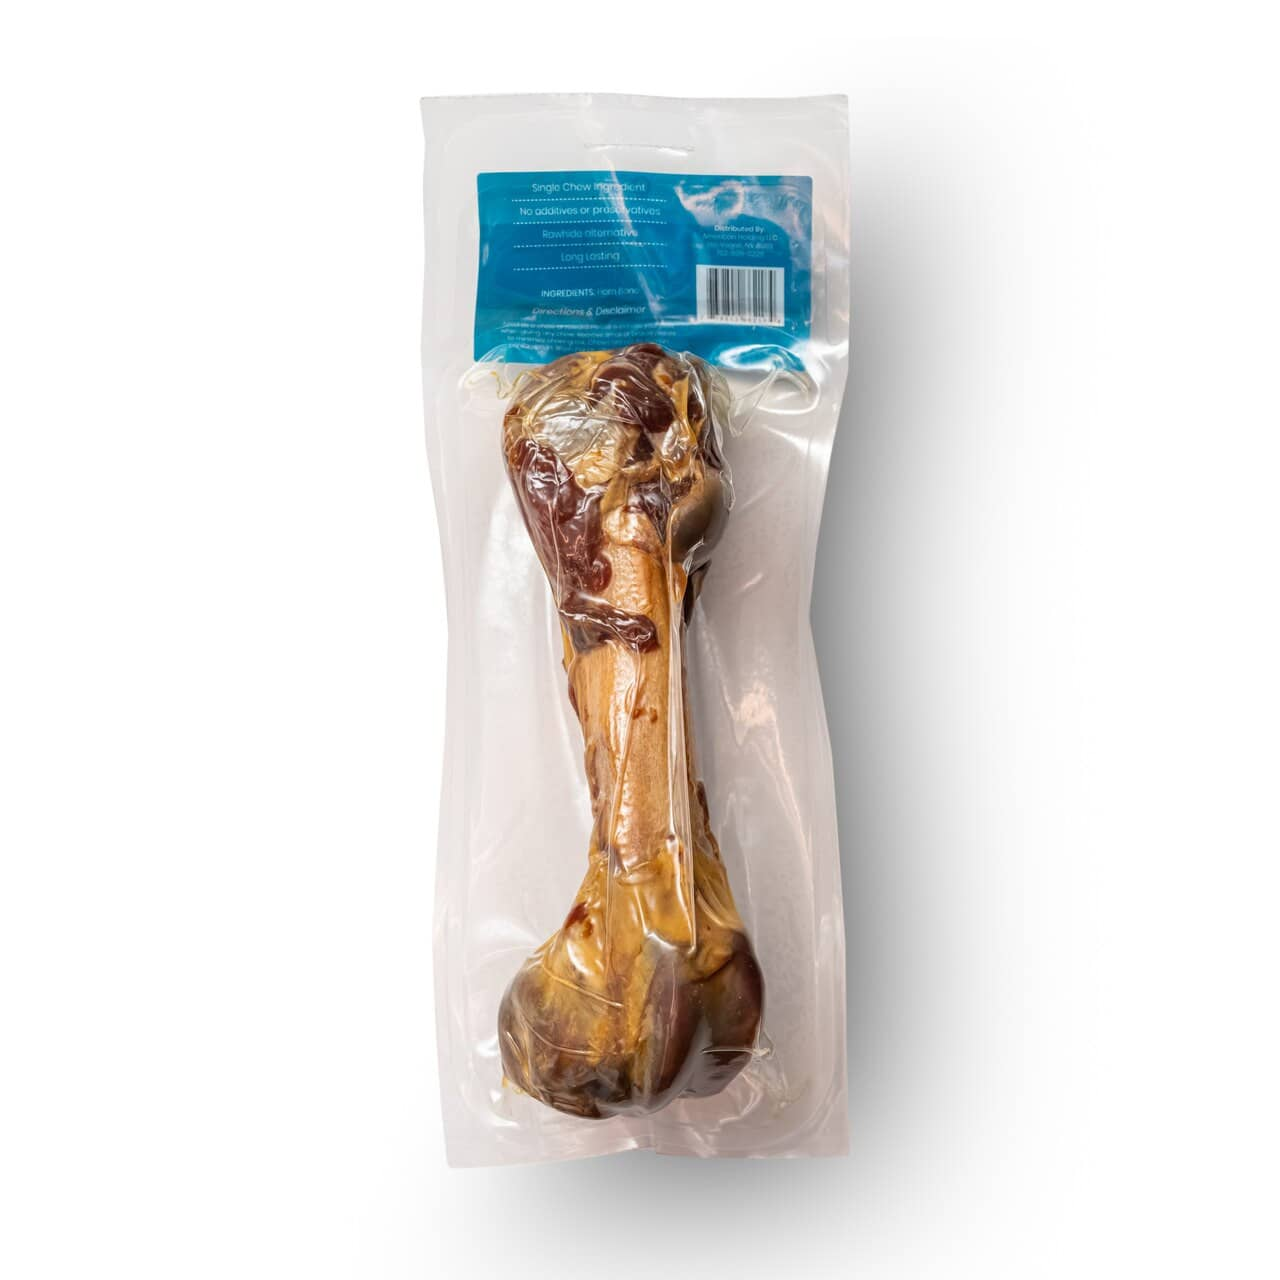 Ham Bone Serrano | Tasty, Long Lasting, Single Ingredient, All-Natural Dog Chews |